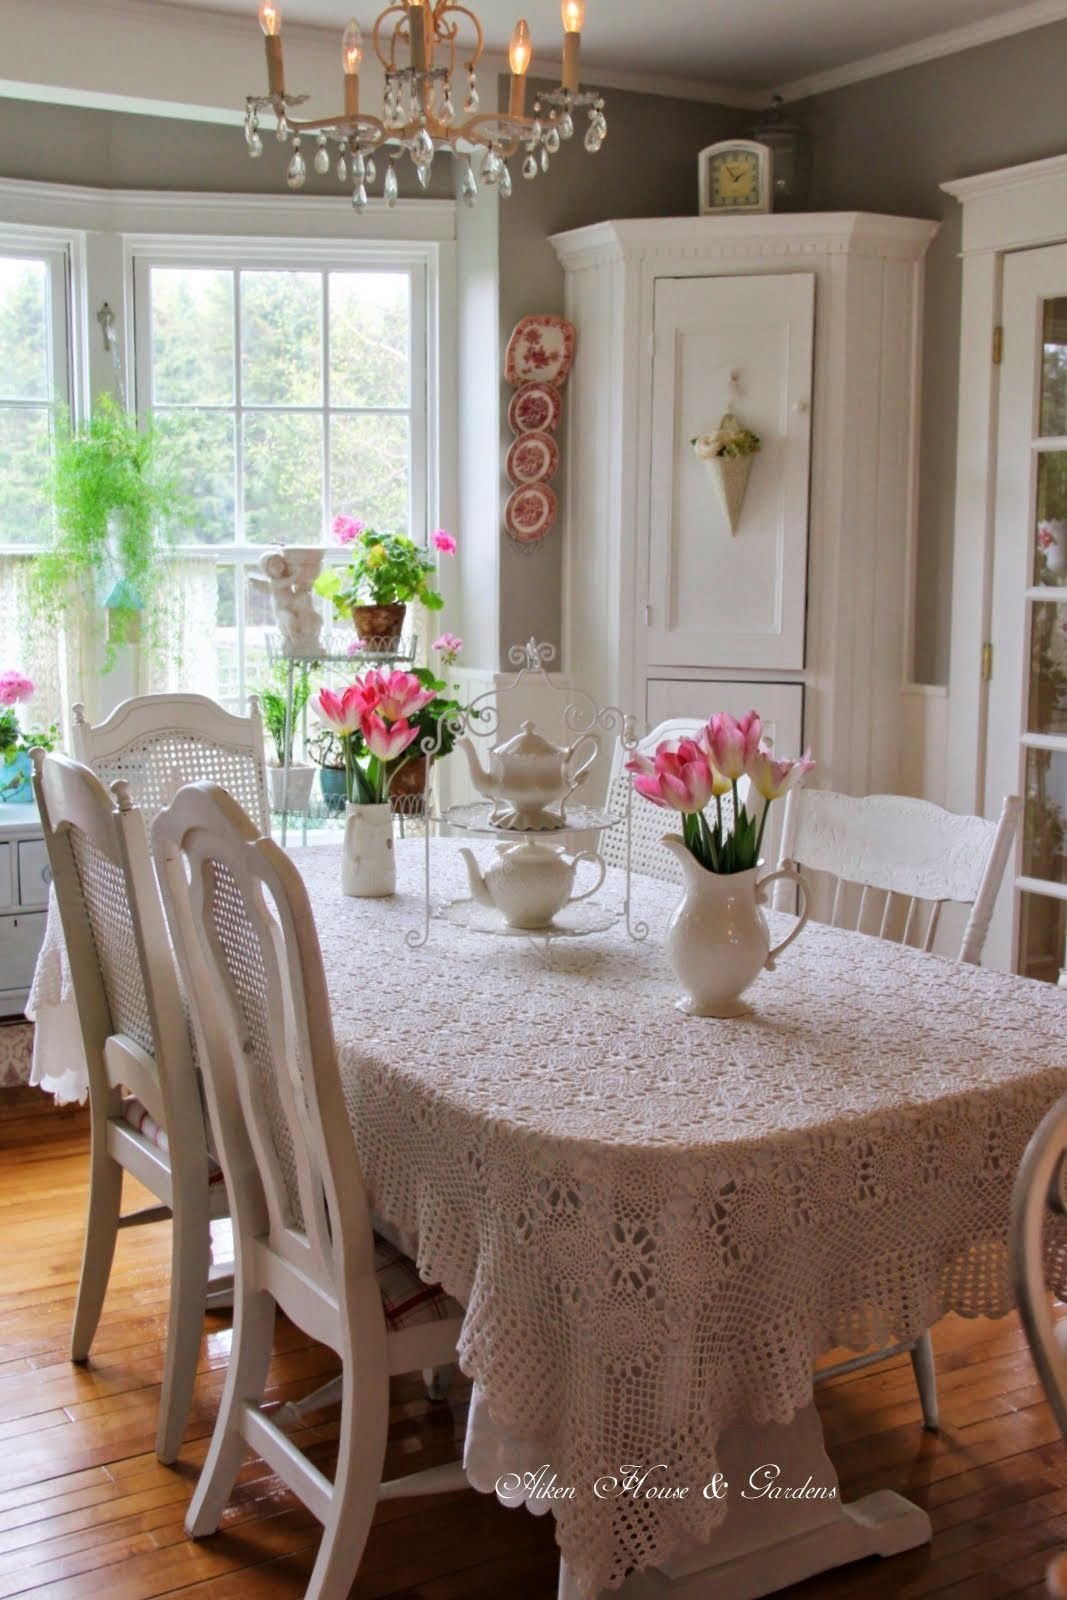 Aiken House & Gardens Kitchendining Room Changes  Cottages Fascinating Shabby Chic Dining Room Decor Review